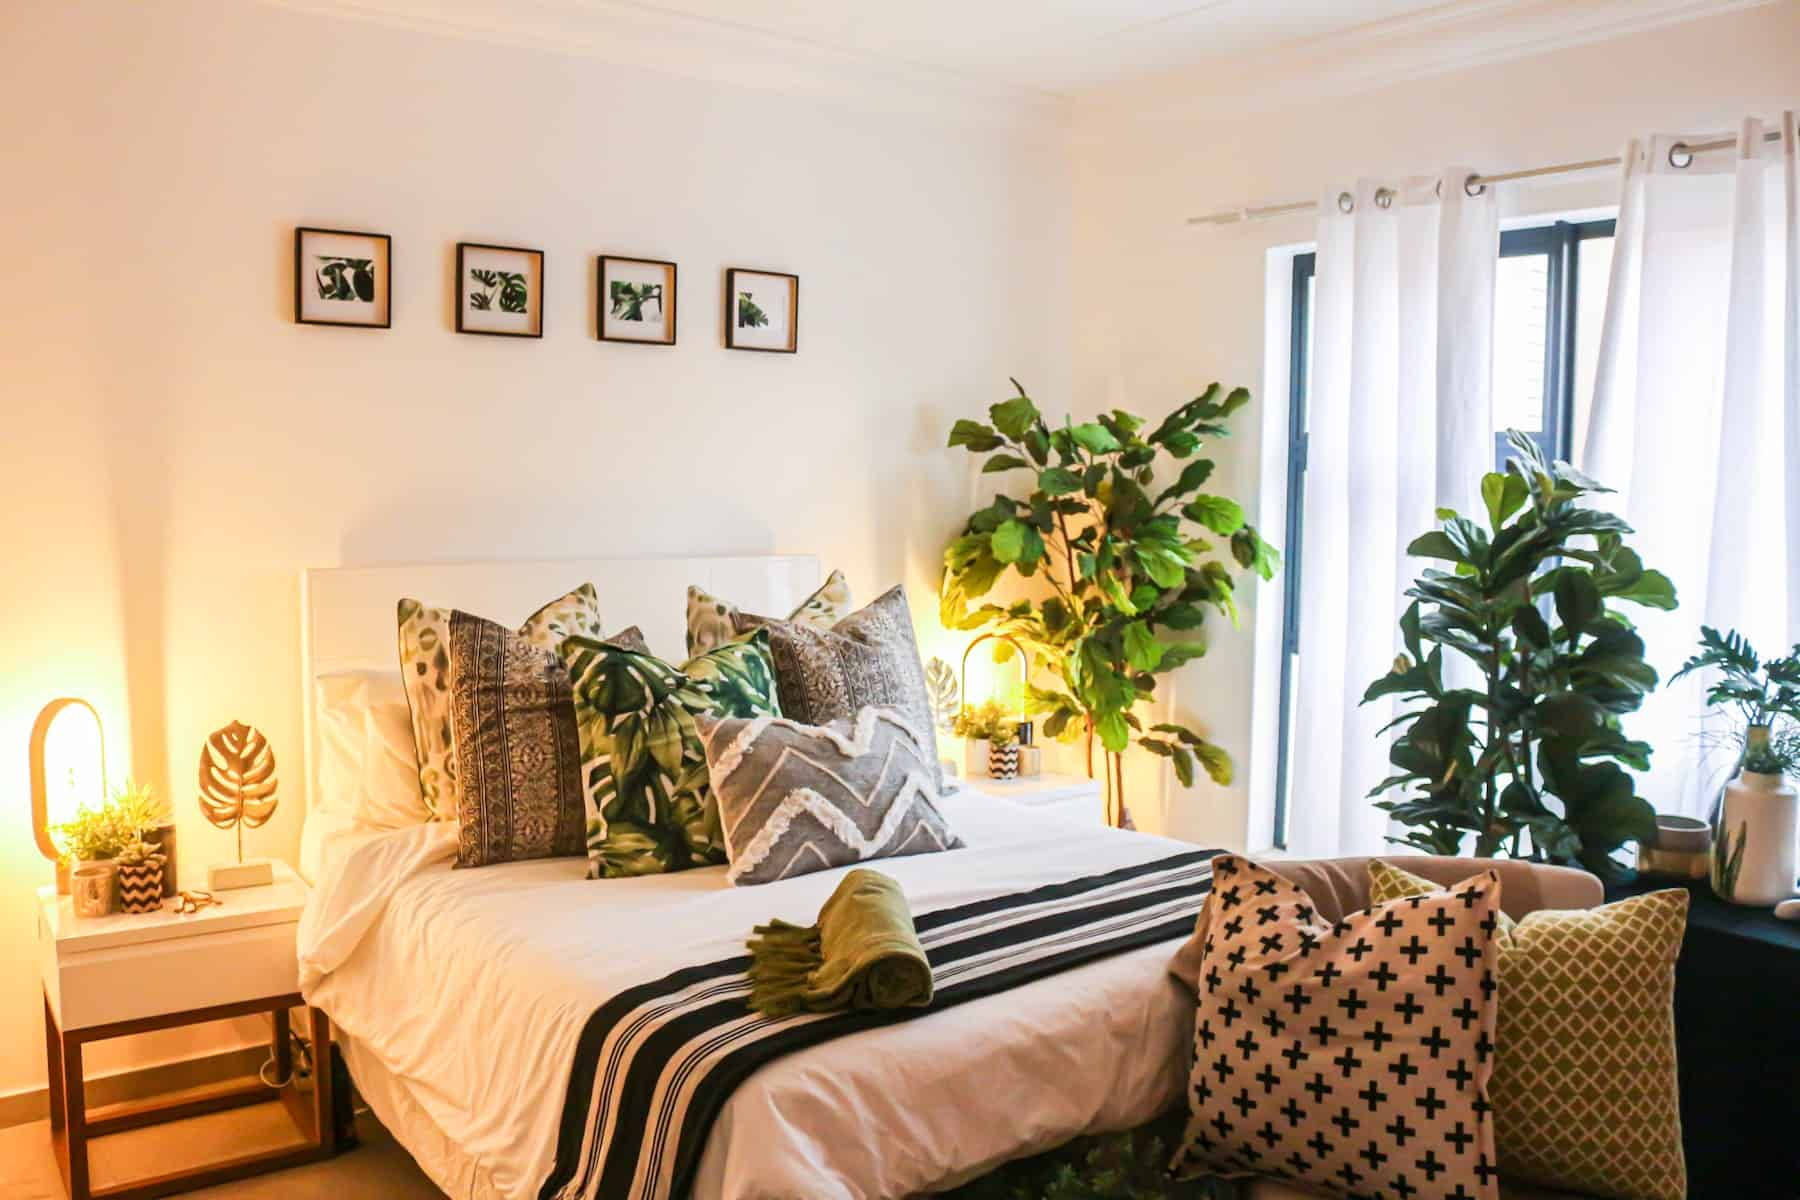 A bedroom with many plants inside of it around the bed.